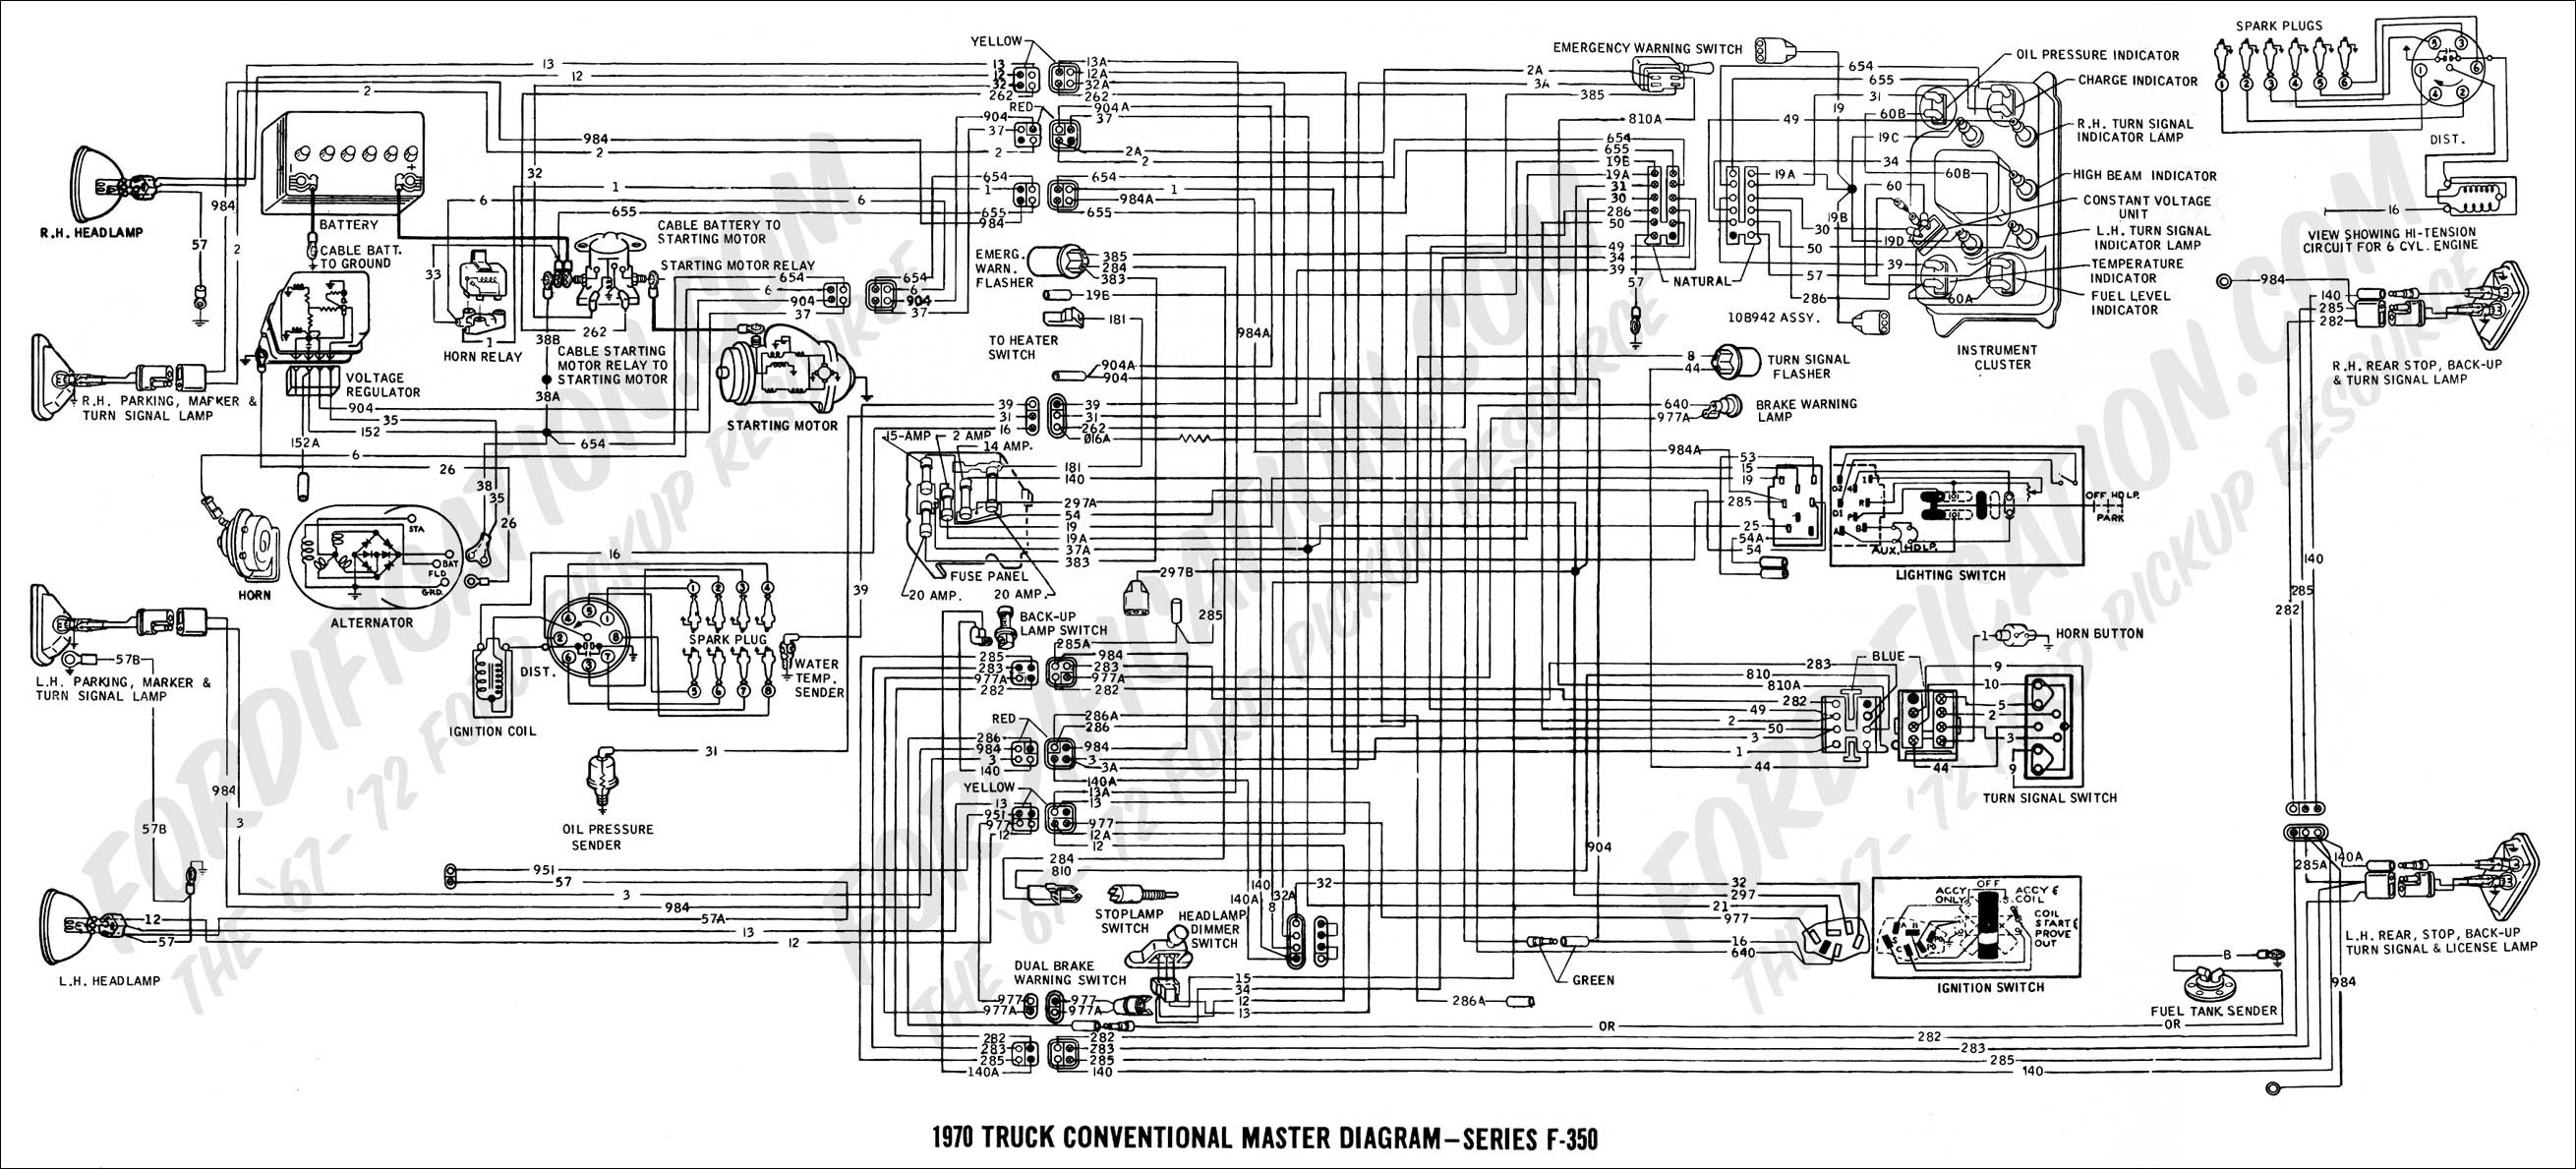 Xrm Headlight Wiring Diagram - Technical Diagrams on